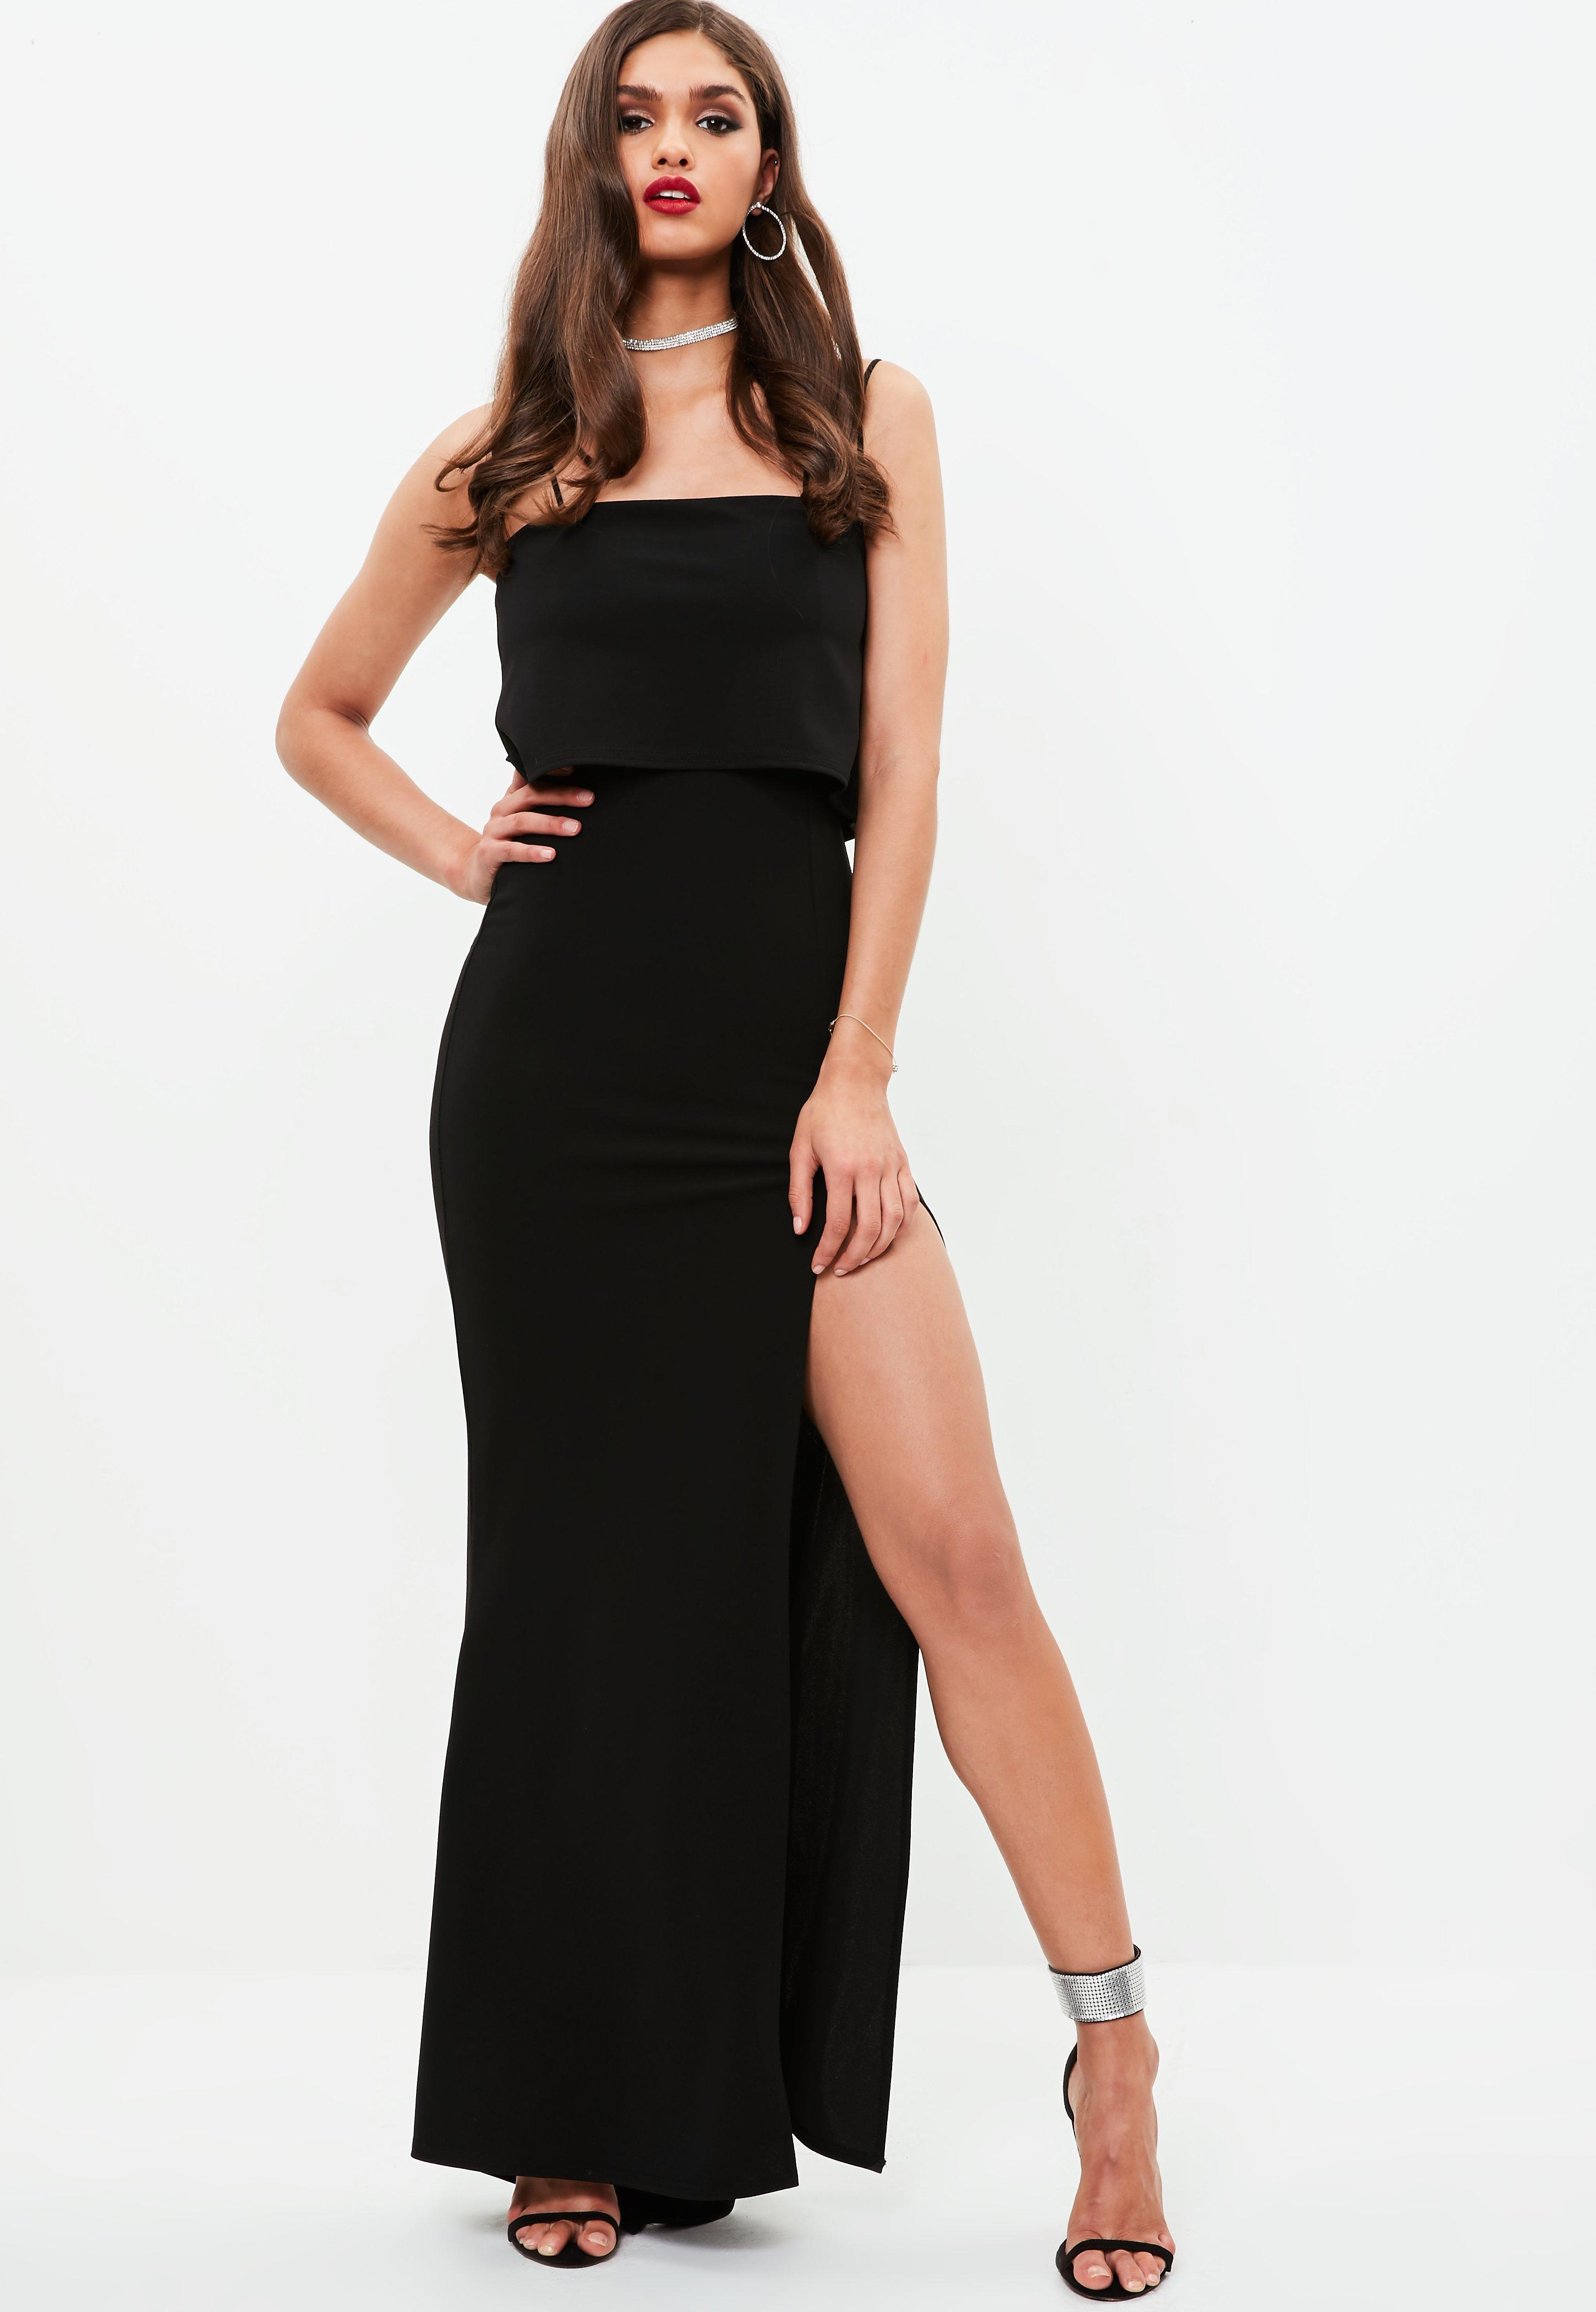 Missguided Square Neck Overlay Maxi Dress Cheap Sale View Fashion Style For Sale For Sale The Cheapest Extremely Sale Online Huge Surprise 8h4iGiOn0